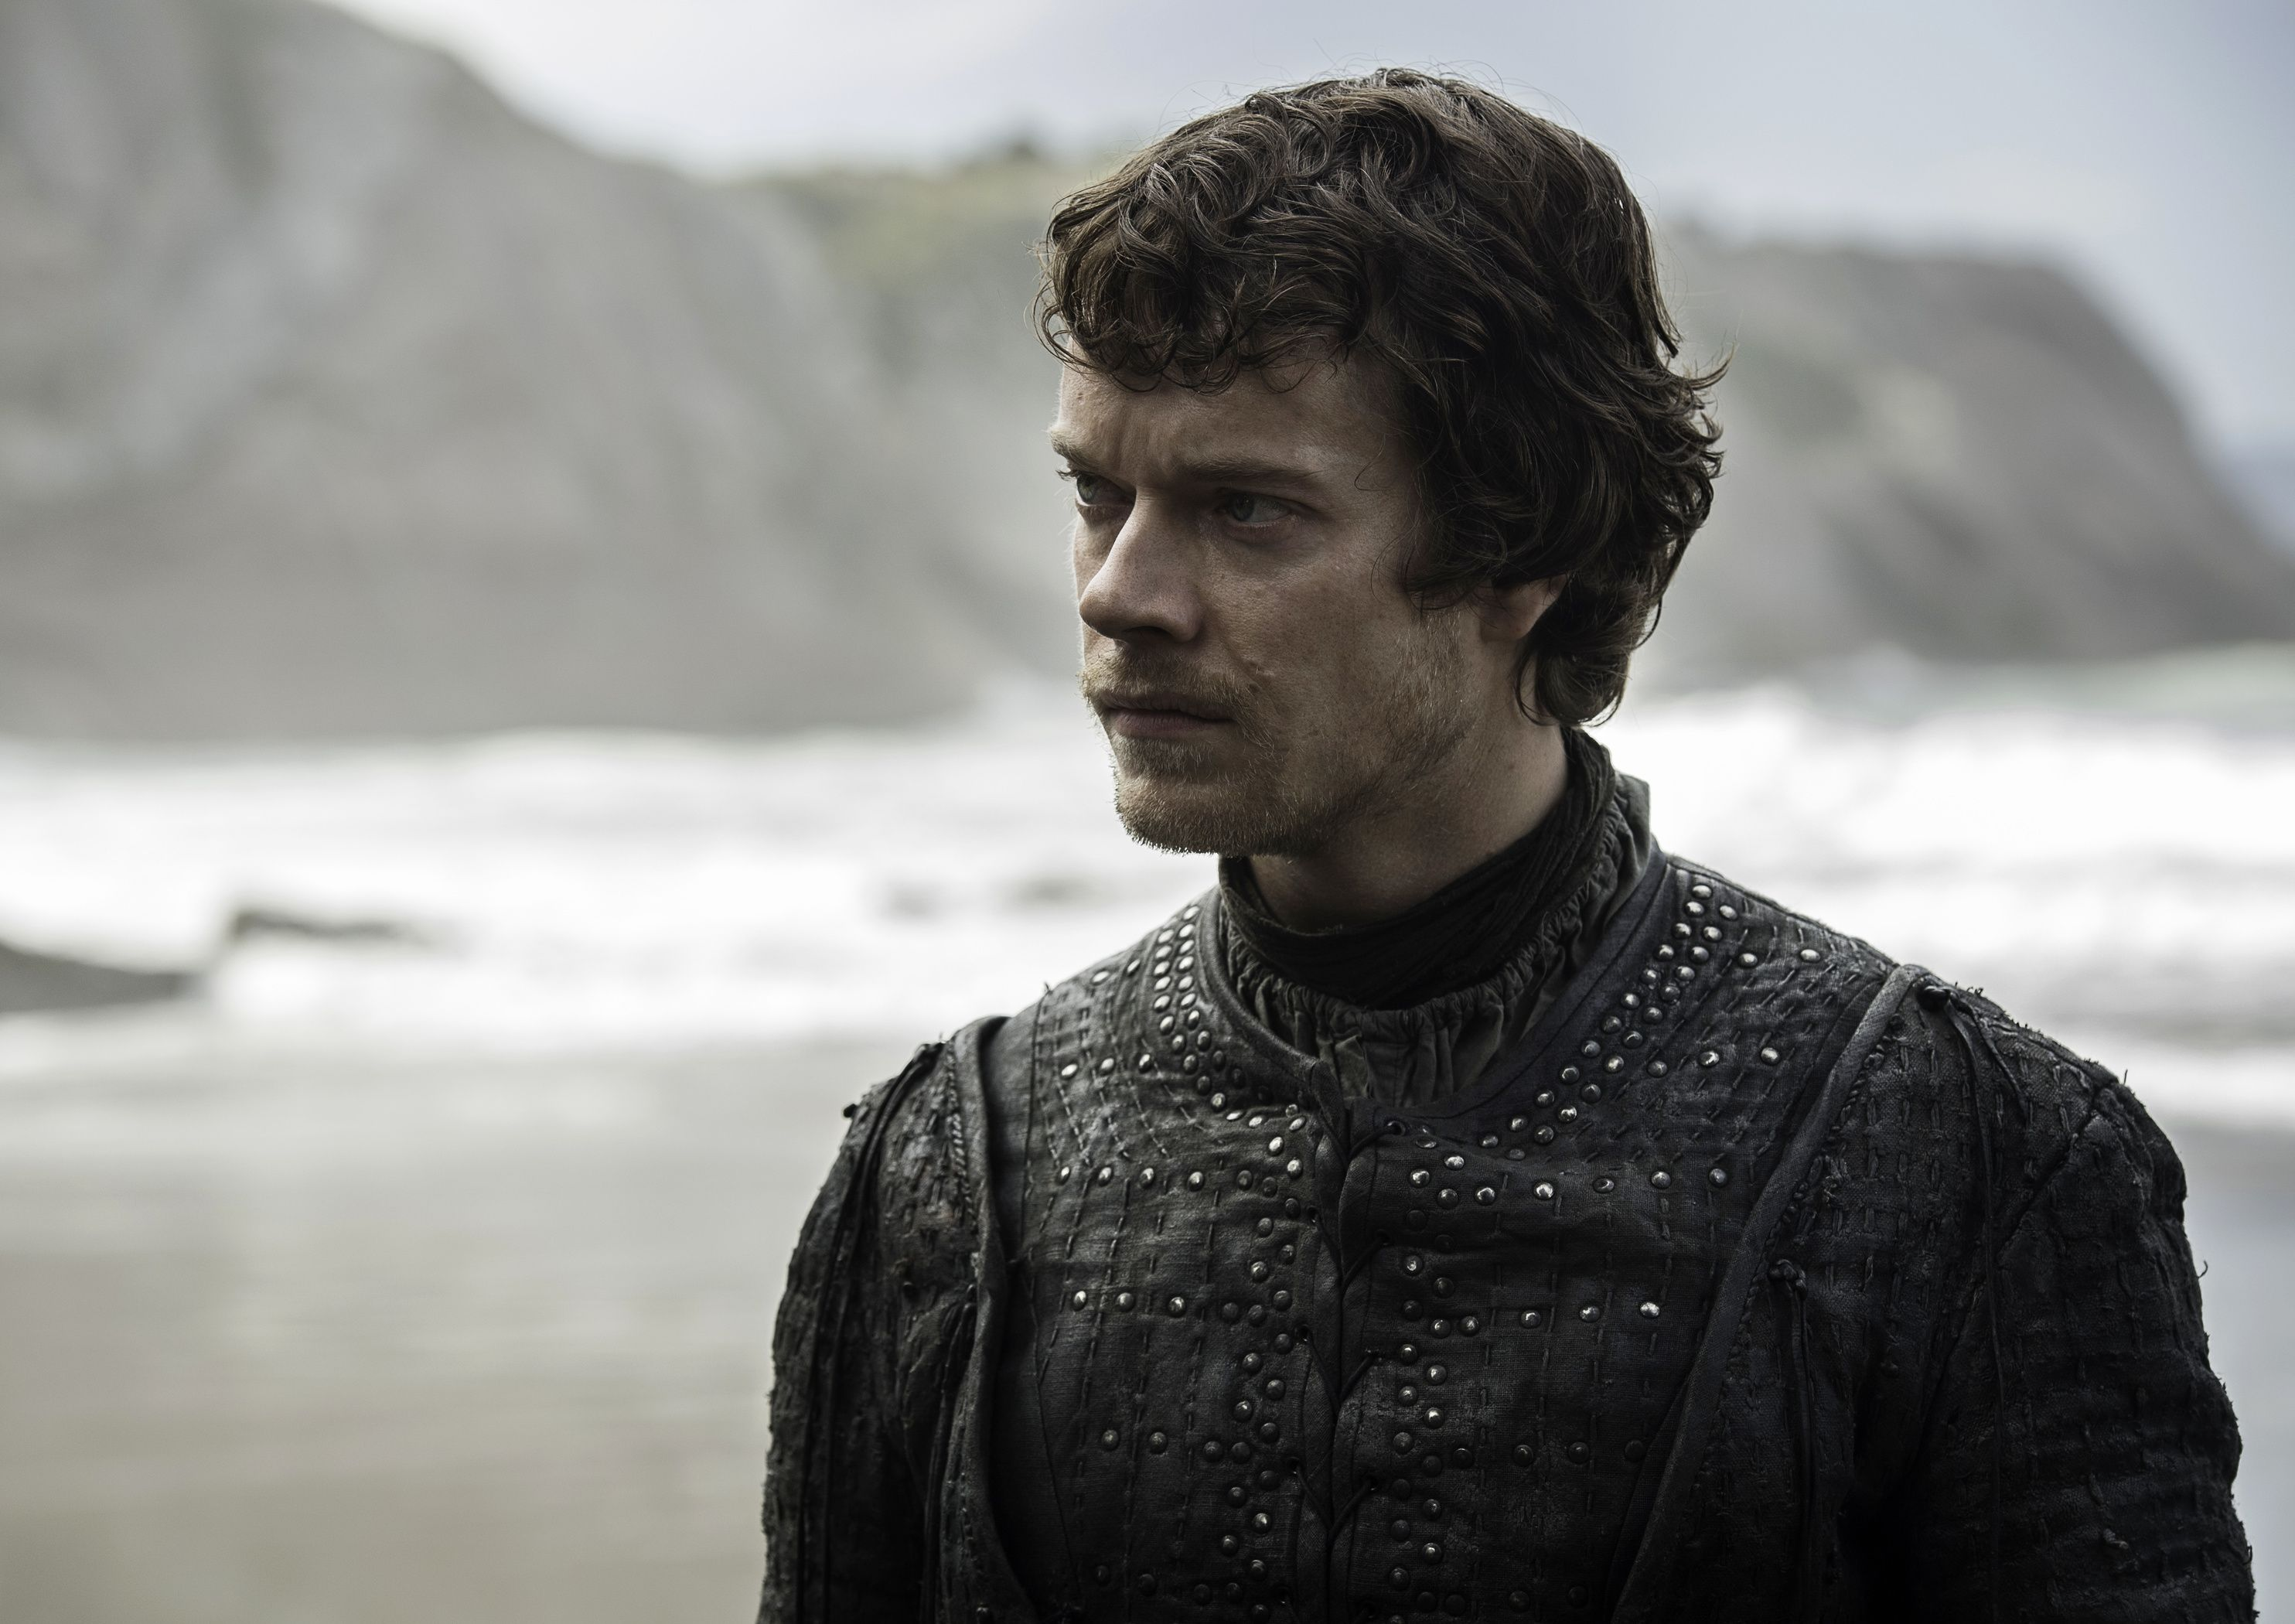 Theon on Game of Thrones